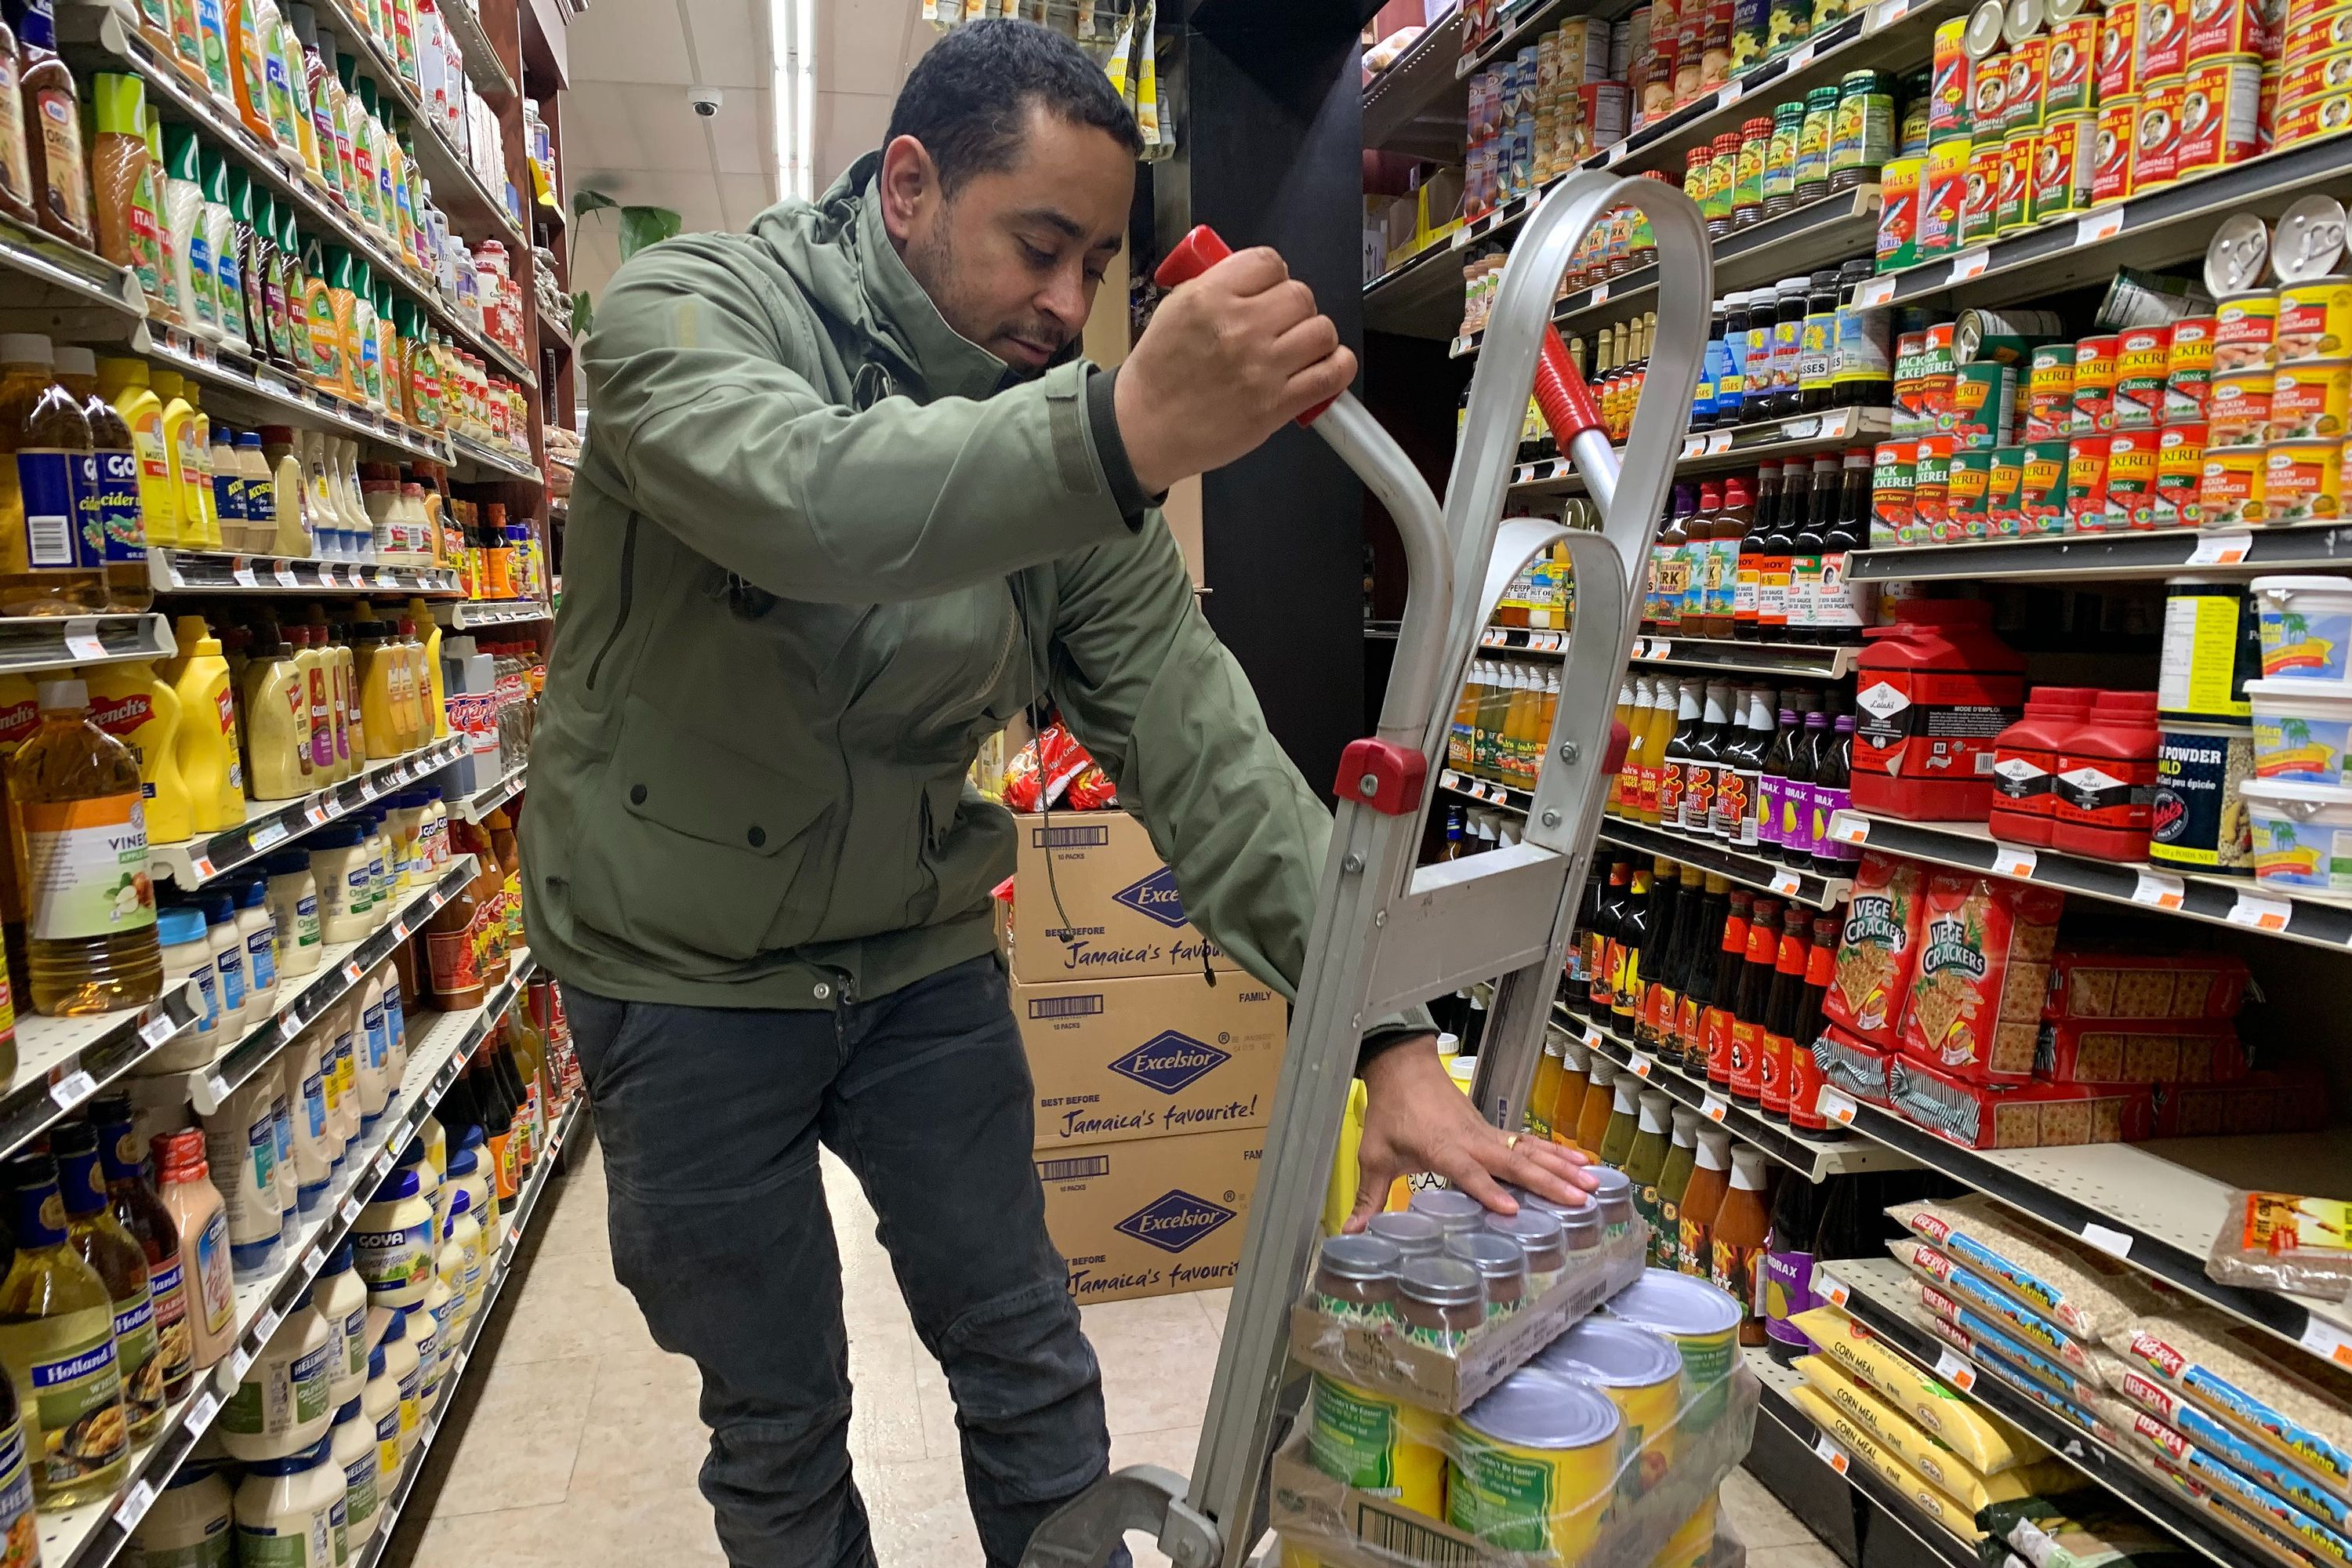 Ozone Park-based Compare Foods manager Juan Martinez said that food suppliers have been struggling to meet demands from local grocery stores like his.